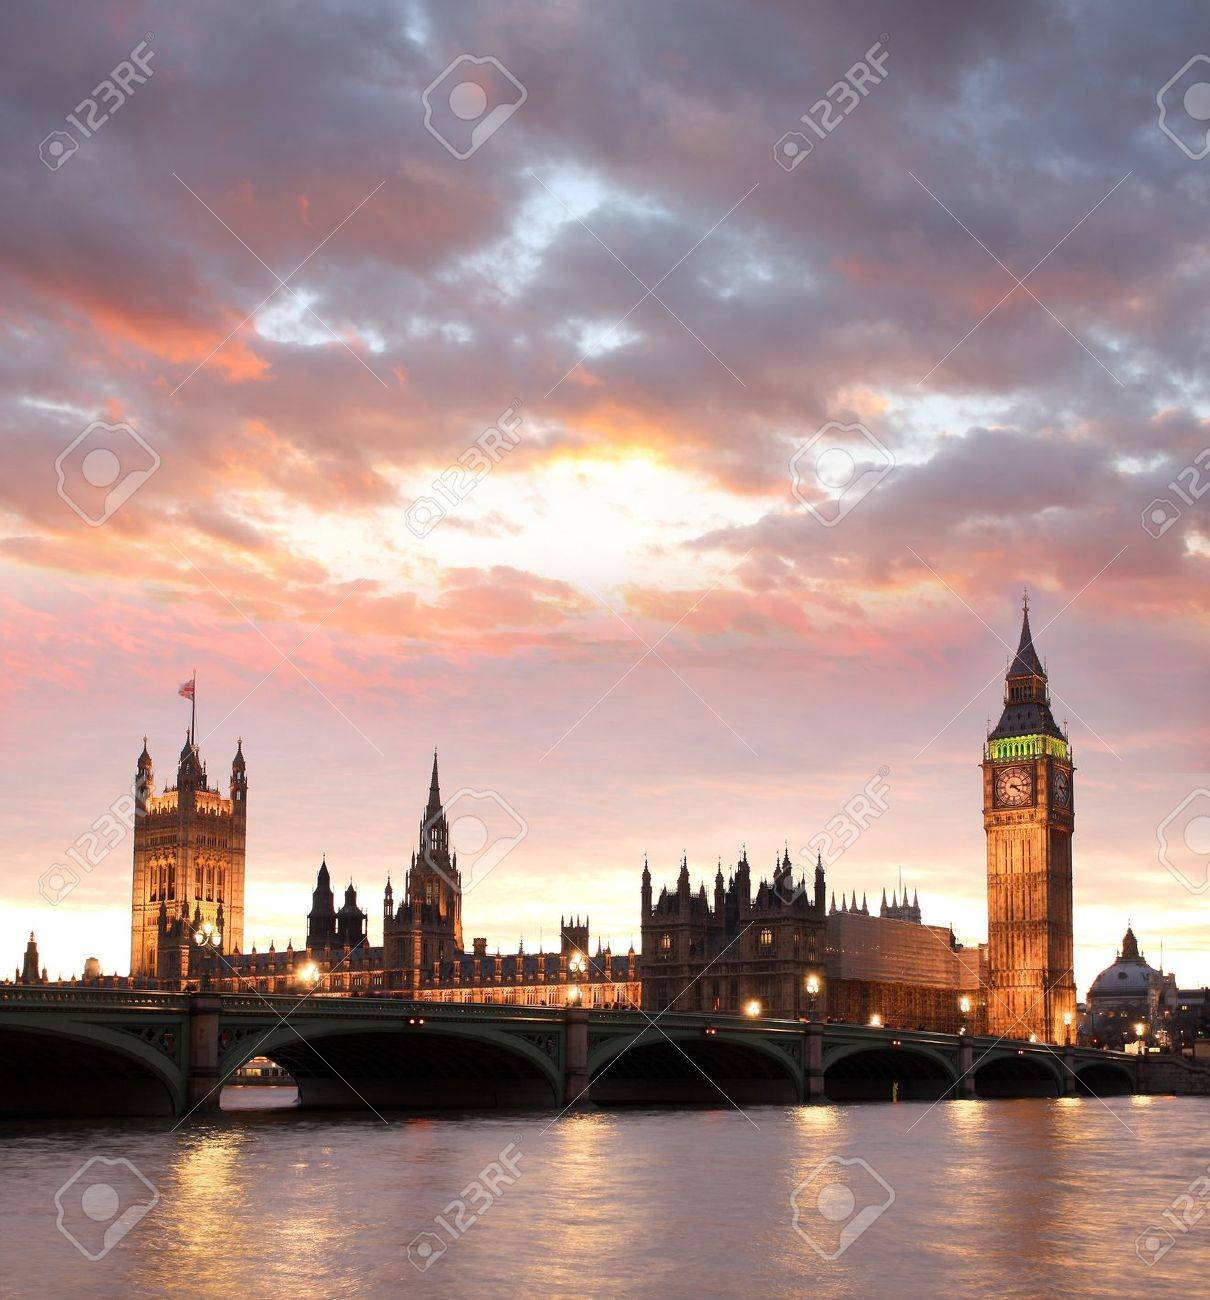 Famous Big Ben in the evening with bridge, London, England Stock Photo - 15389025